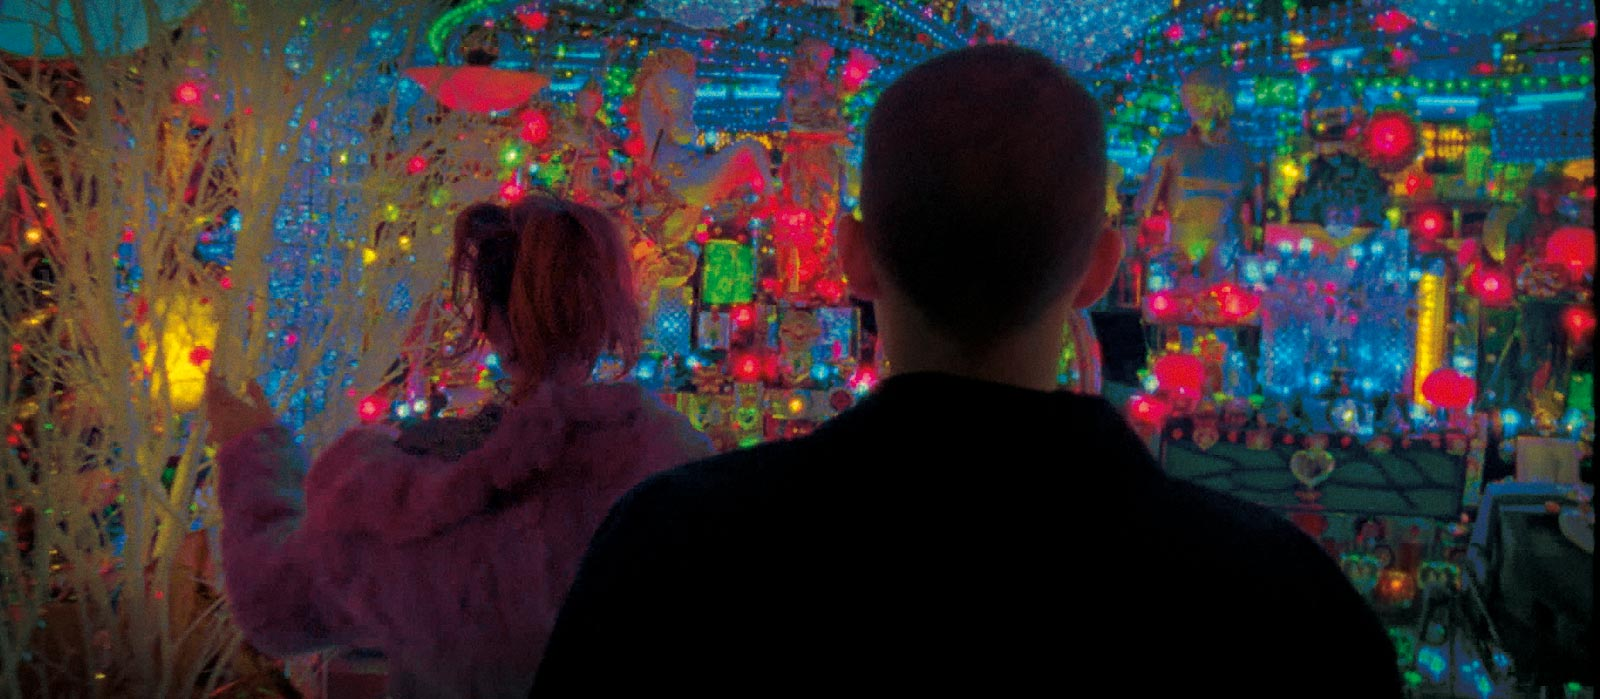 Enter The Void: Build Your Own Review